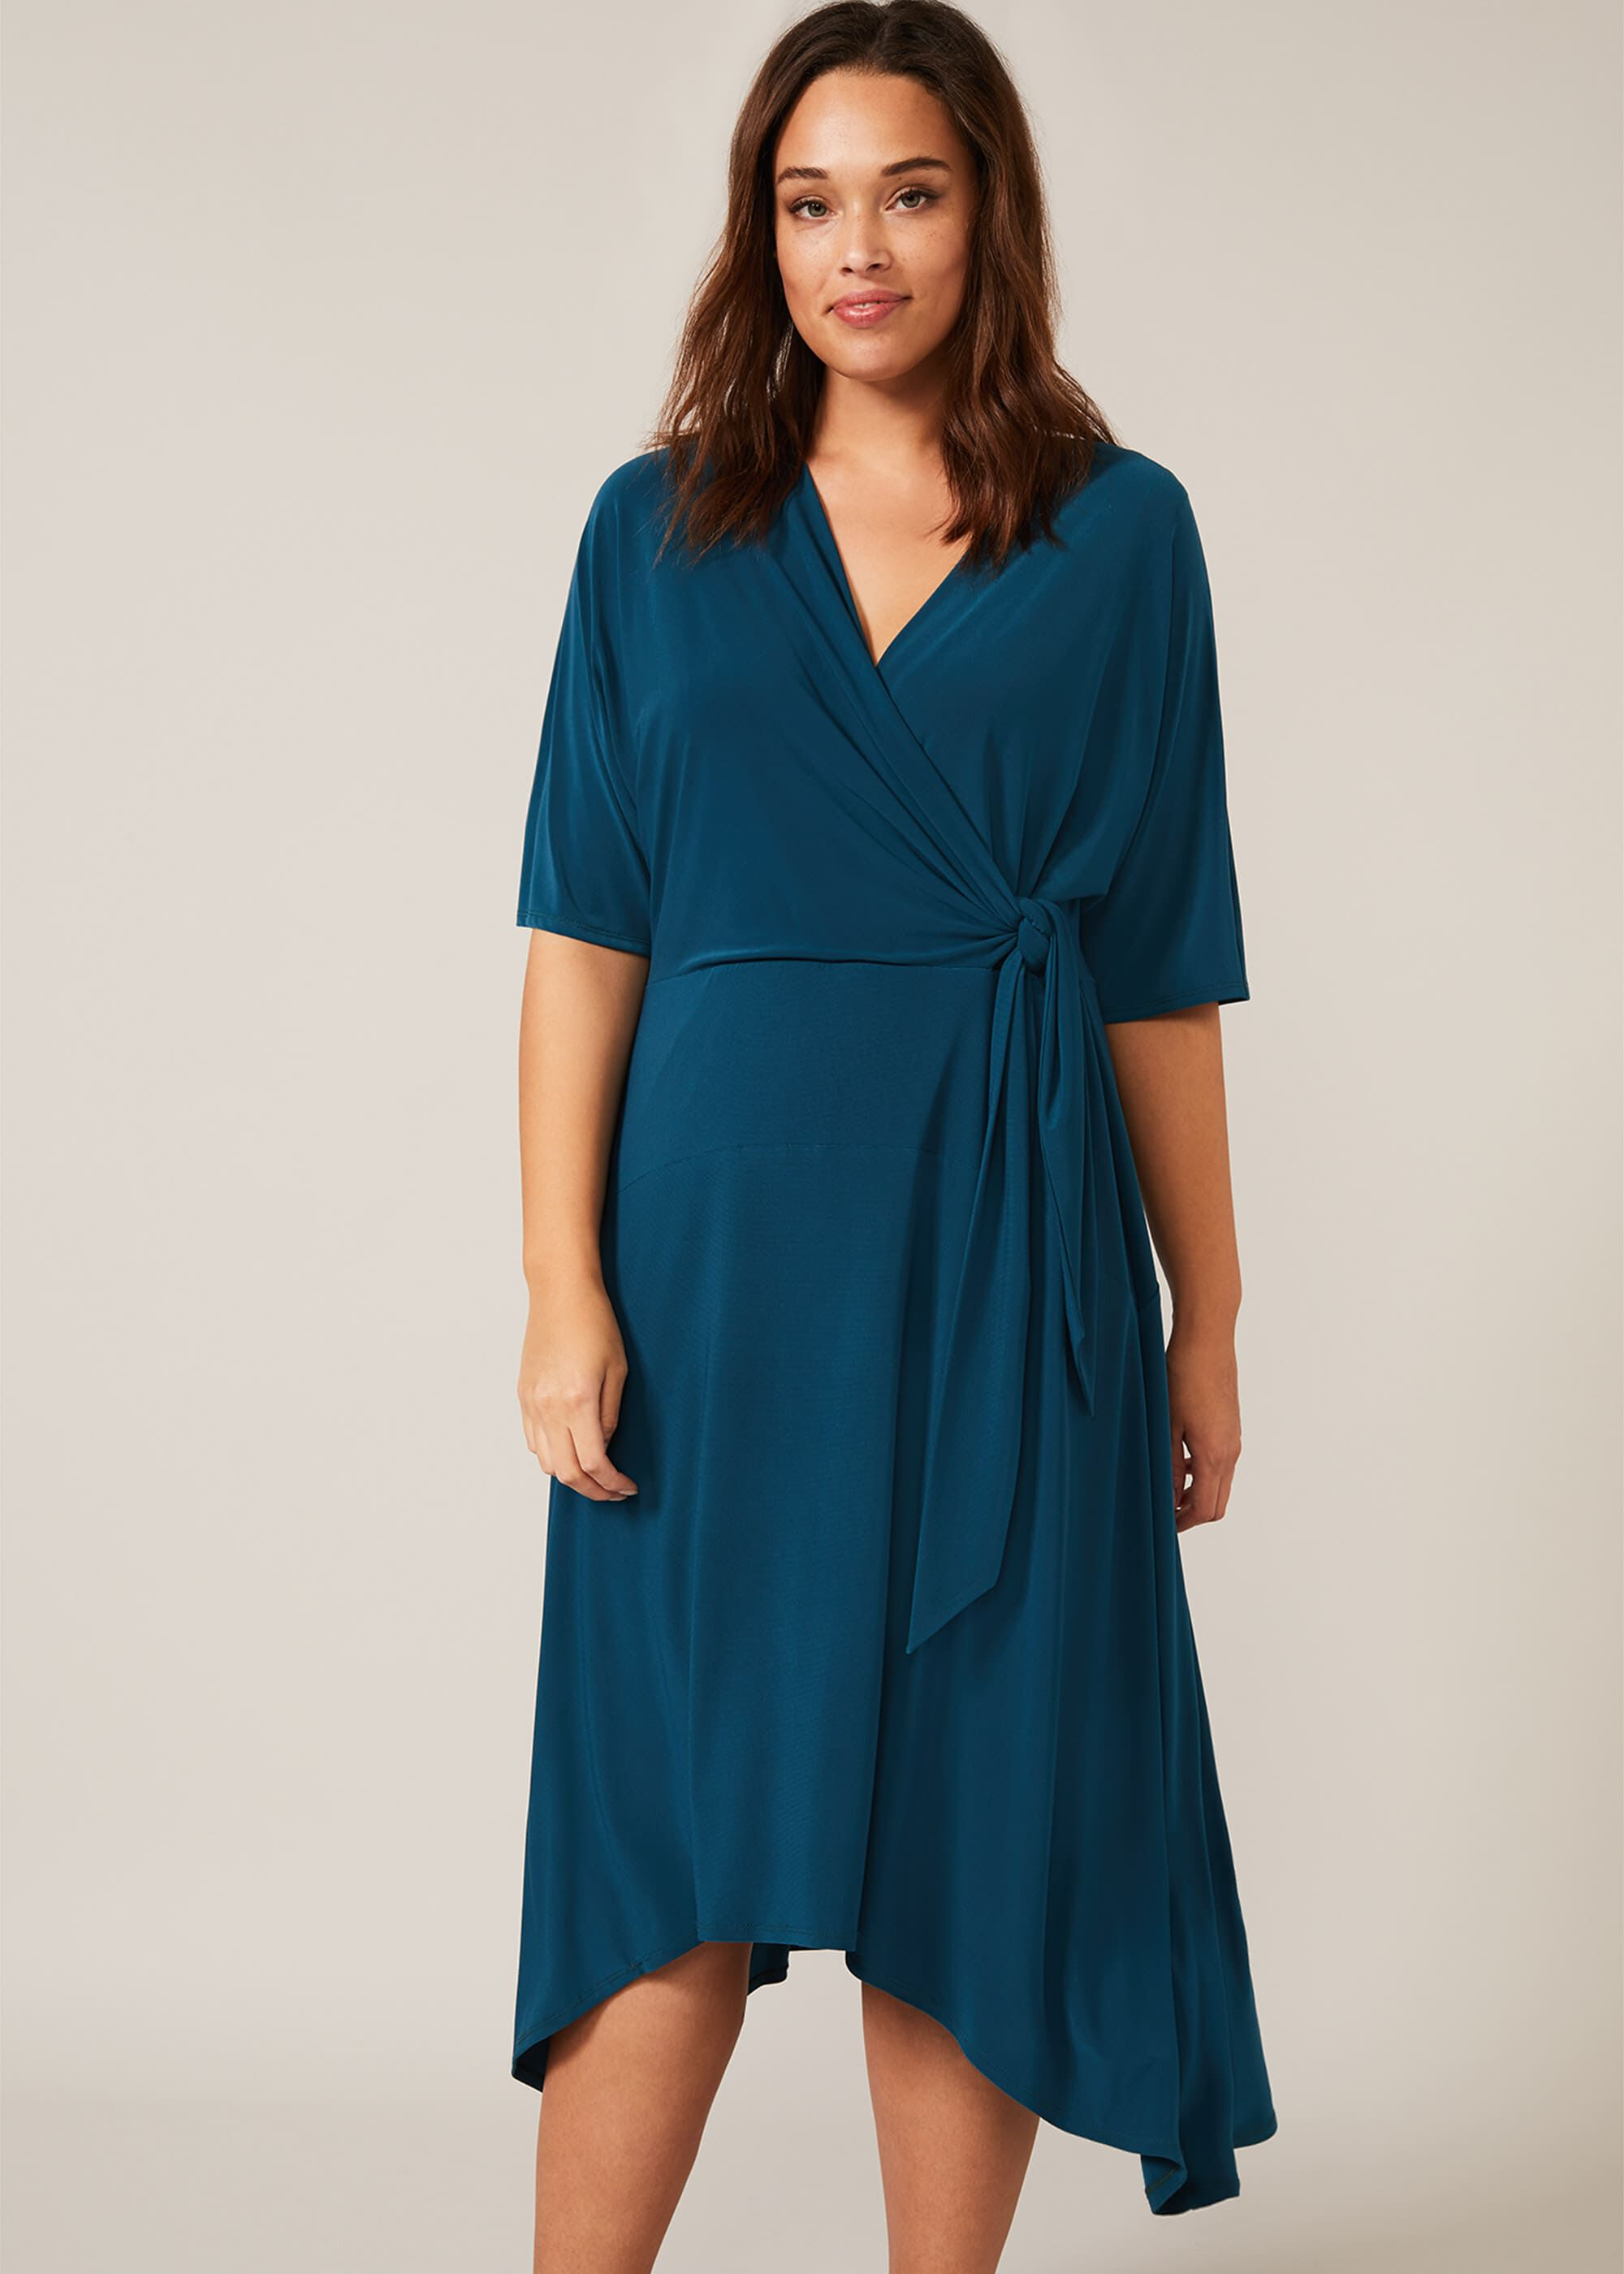 Studio 8 Emery Jersey Dress, Blue, Fit & Flare, Occasion Dress